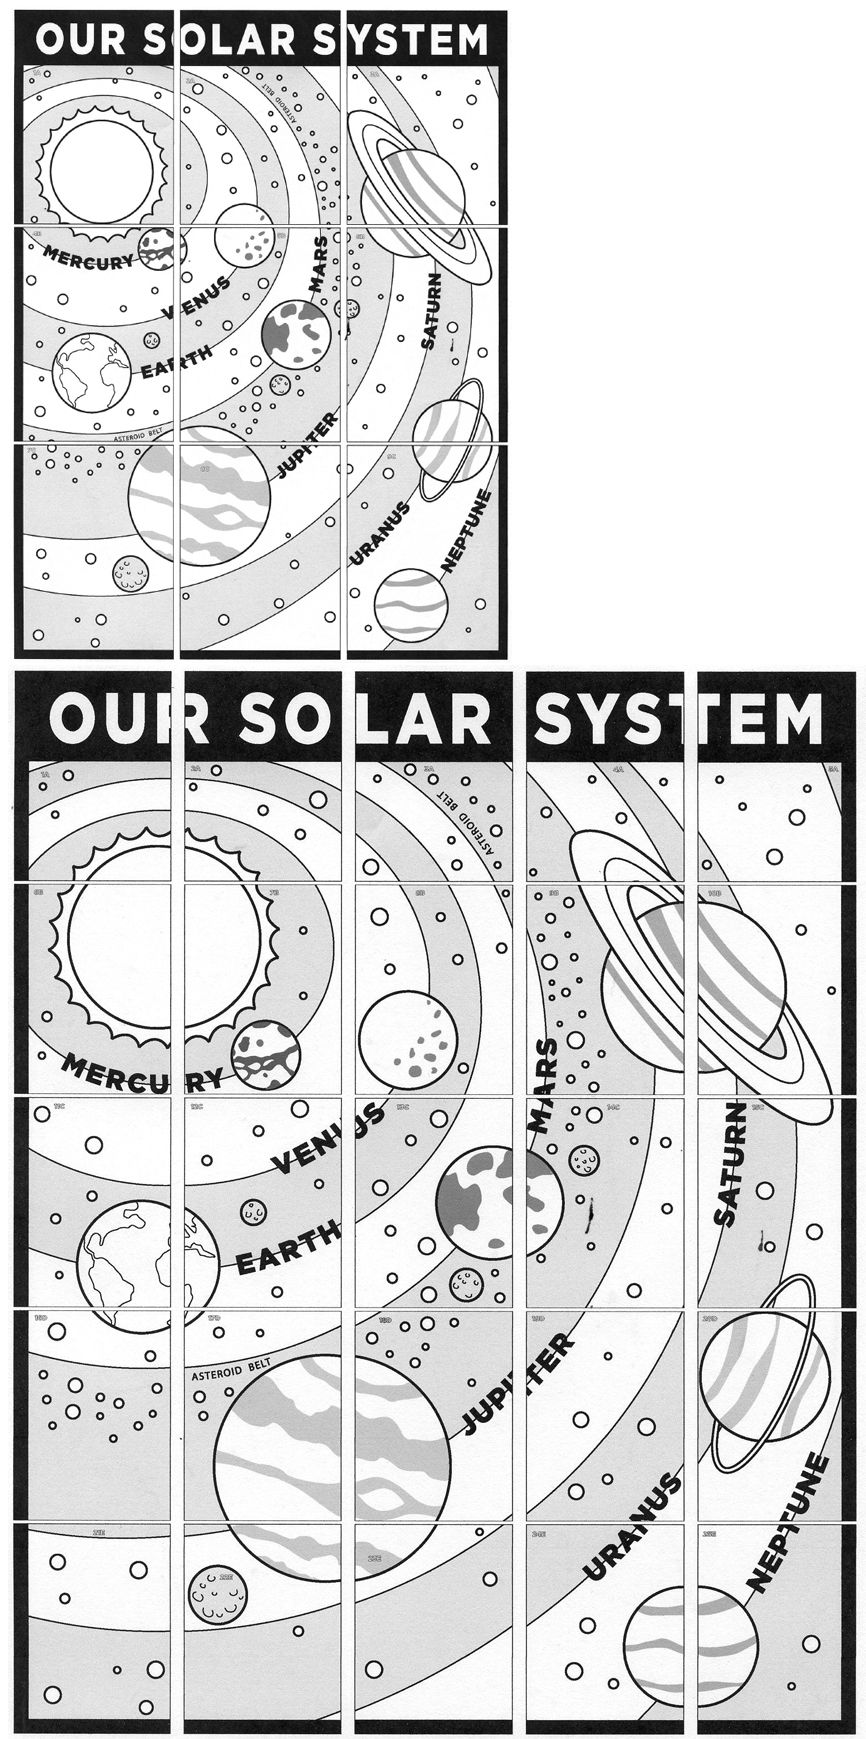 Solar System Mural Art Projects For Kids Art Wall Kids Art Pictures Ideas Solar System Coloring Pages